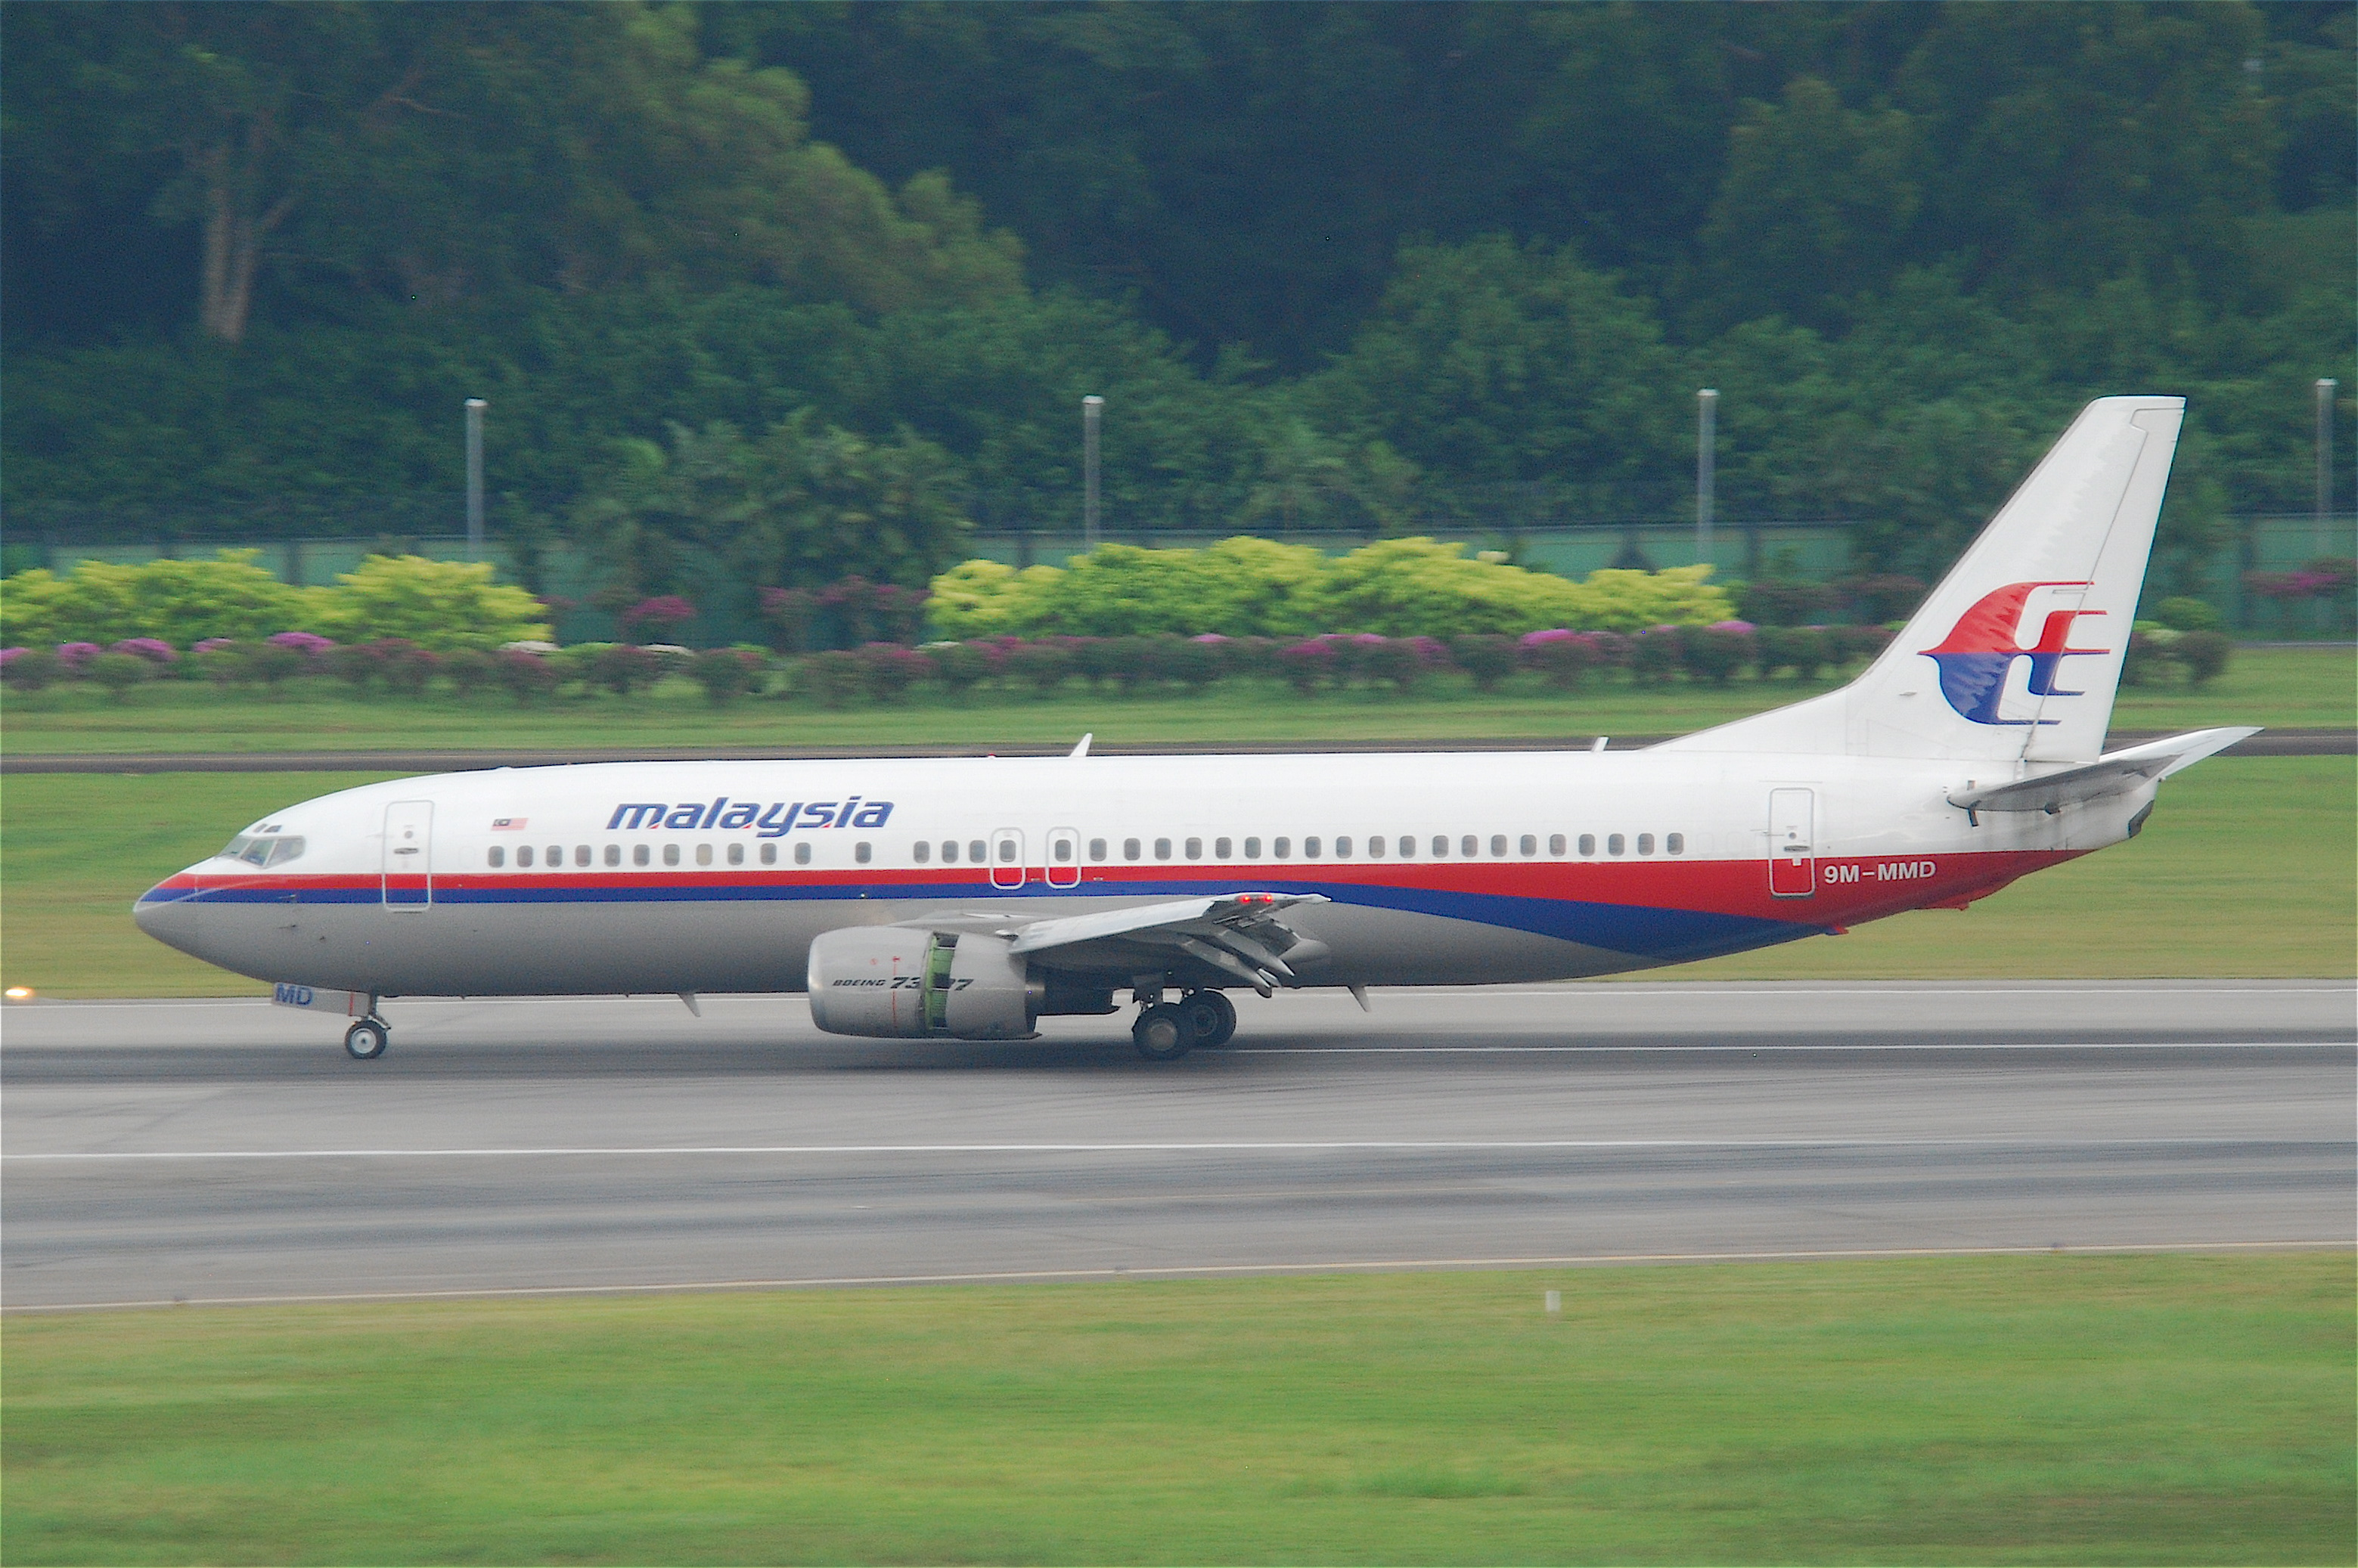 Malaysia_Airlines_Boeing_737-400%3B_9M-M